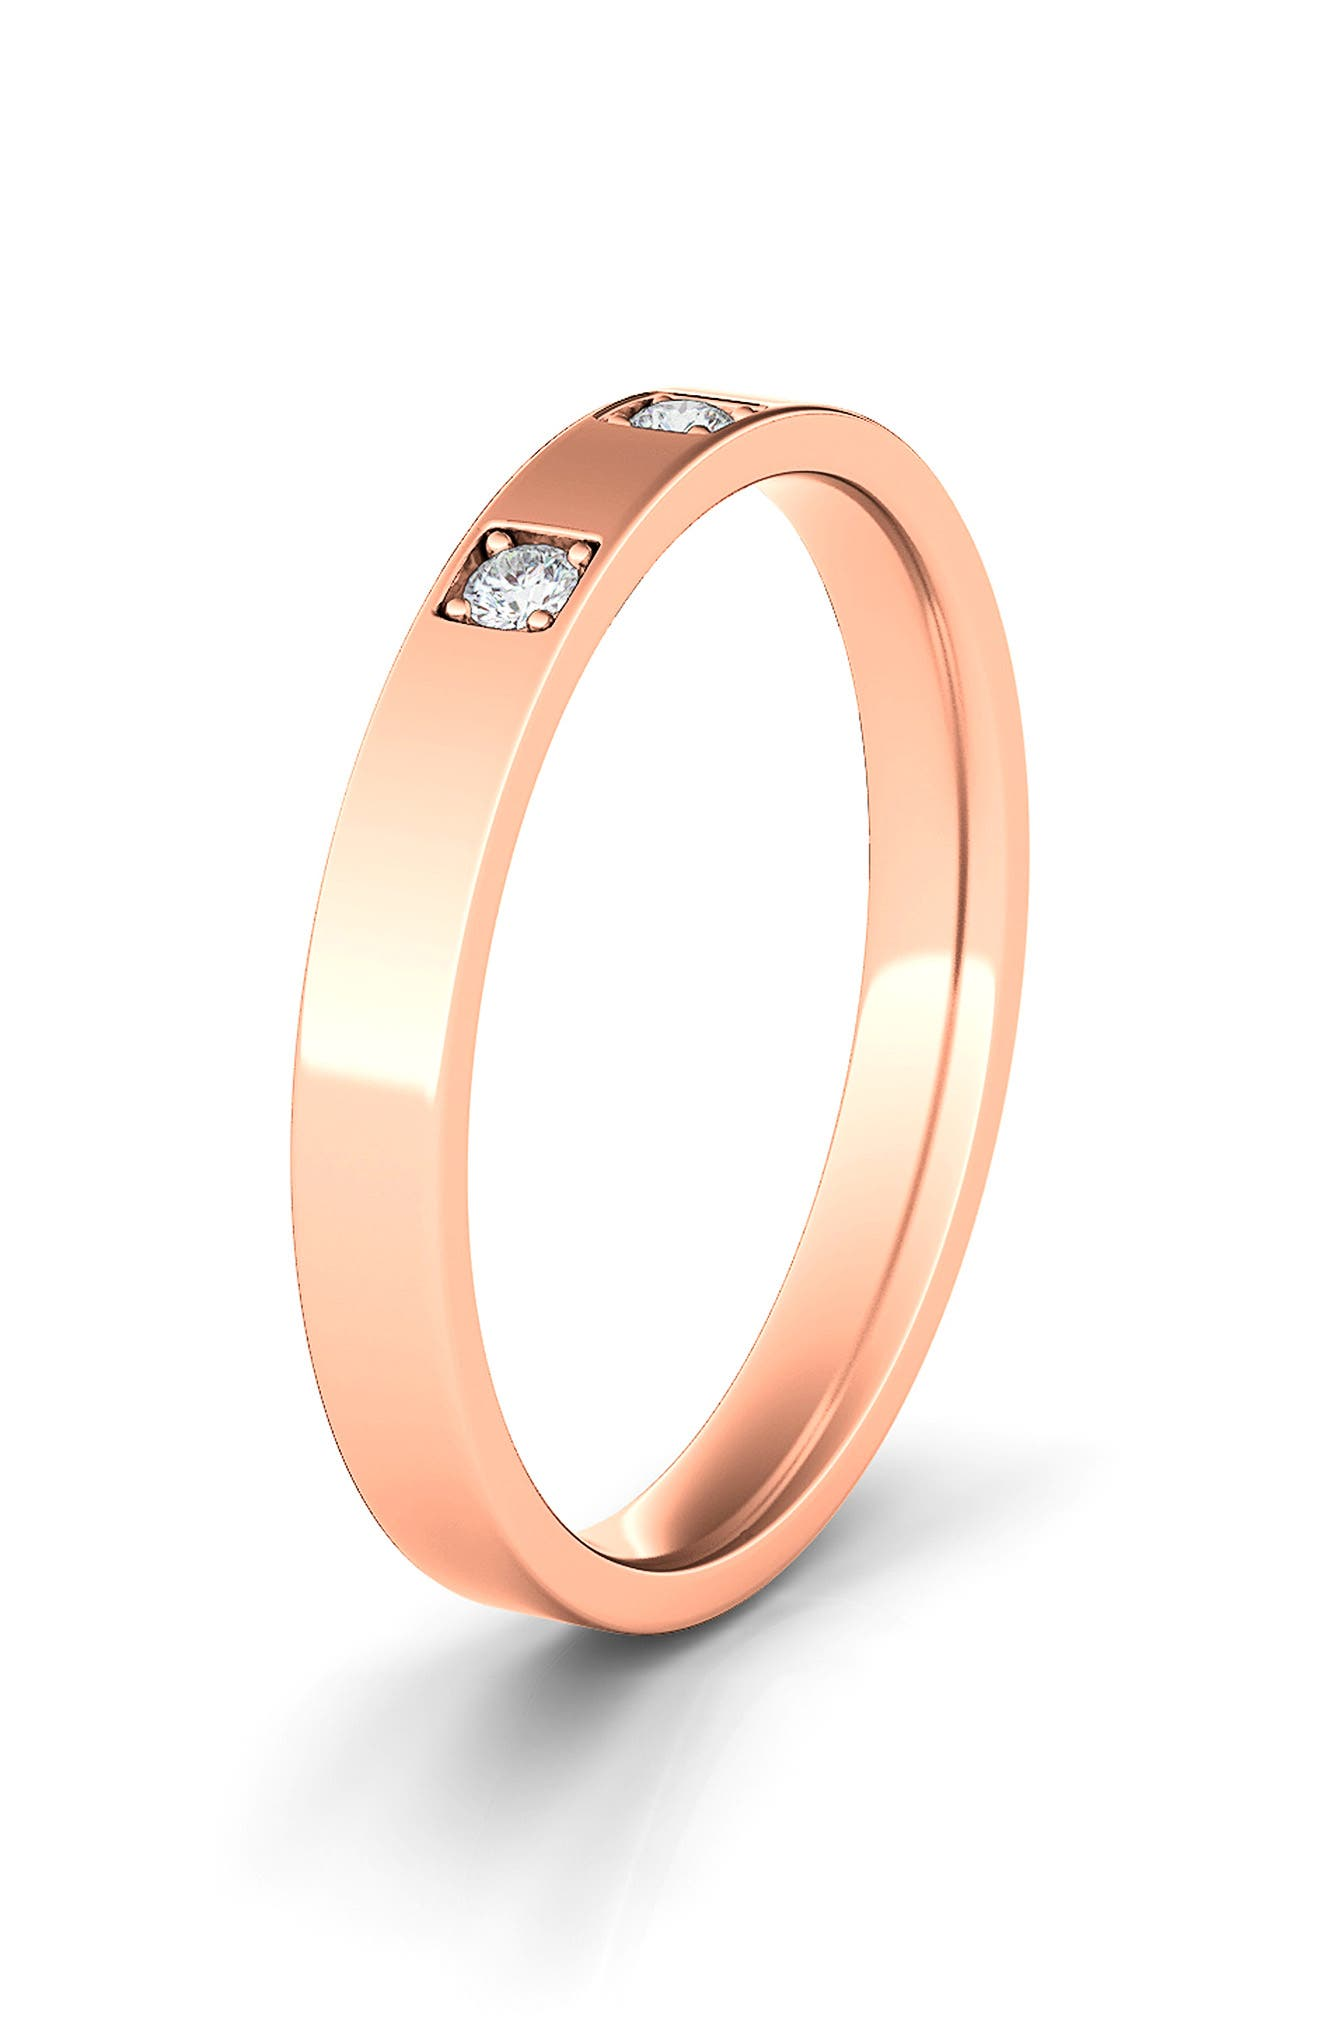 Lab Created Diamond In The Band 14K Gold Ring